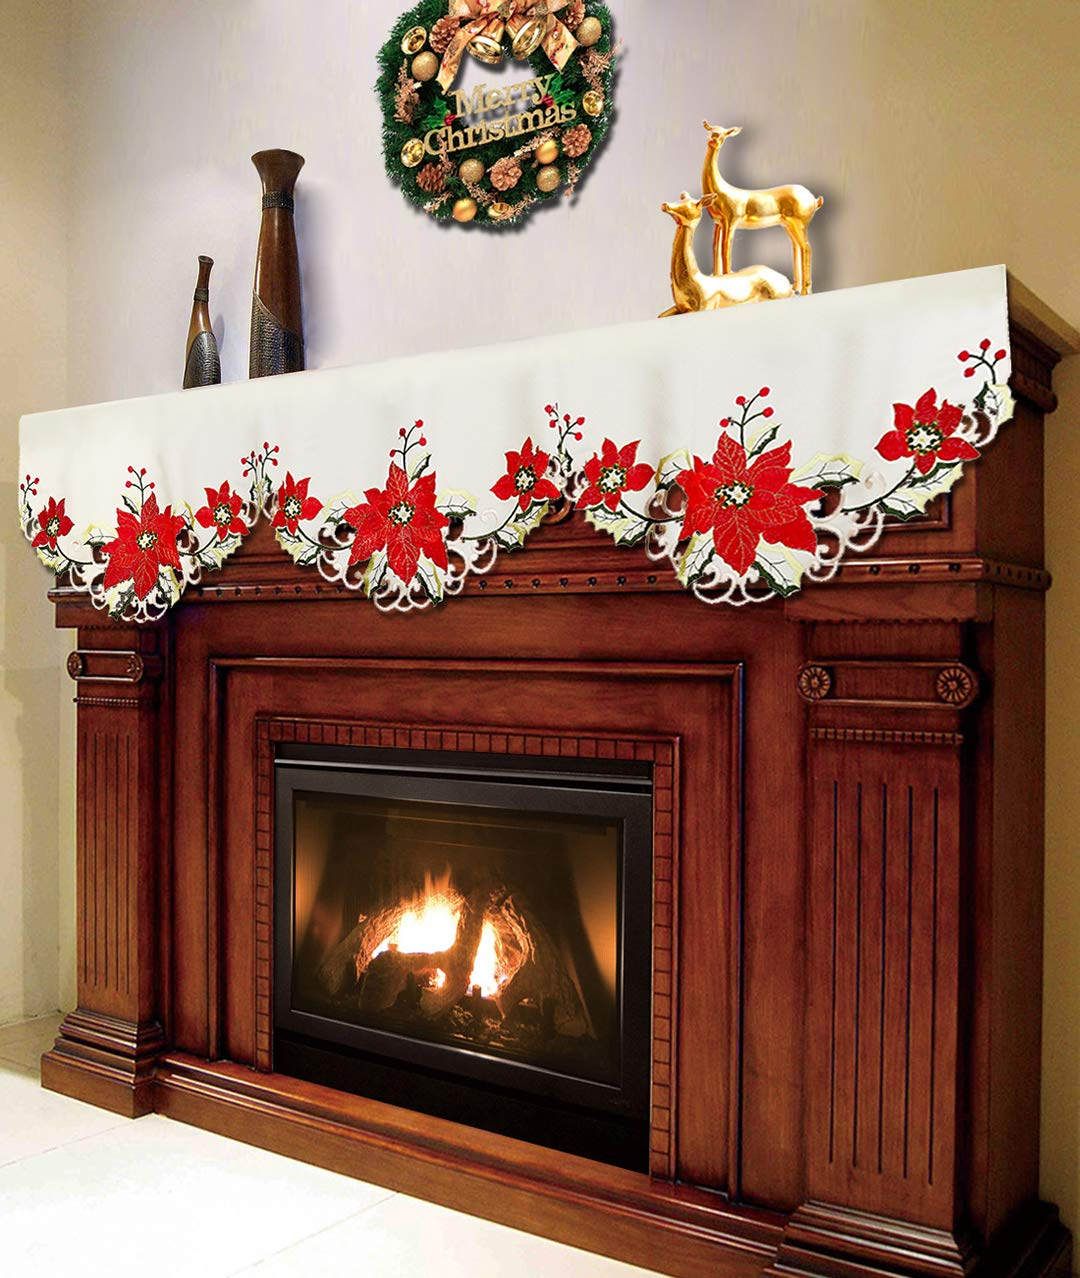 Grelucgo Christmas Holiday Embroidered Poinsettia Mantel Scarf Runners Winter Decorations 69 by 17 Inch by Grelucgo